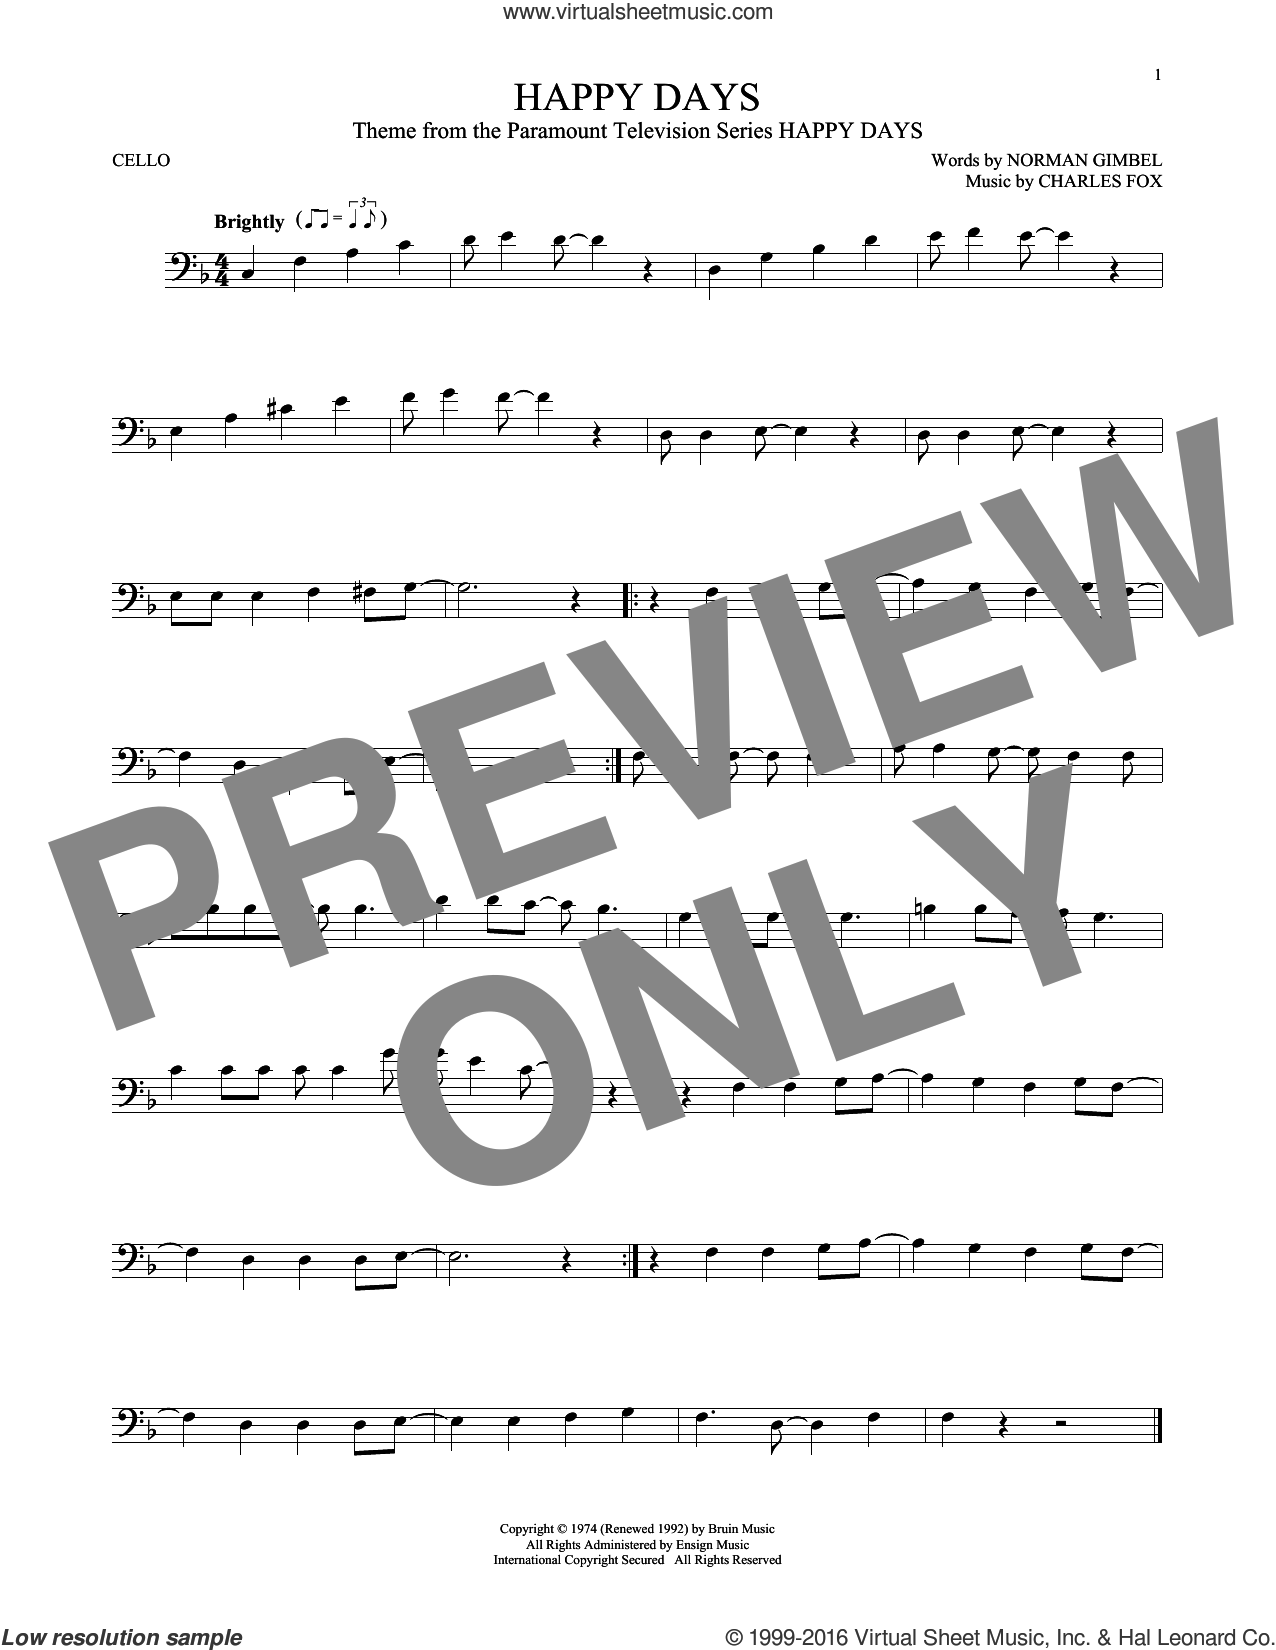 Happy Days sheet music for cello solo by Norman Gimbel, Charles Fox, Norman Gimbel & Charles Fox and Pratt and McClain, intermediate skill level